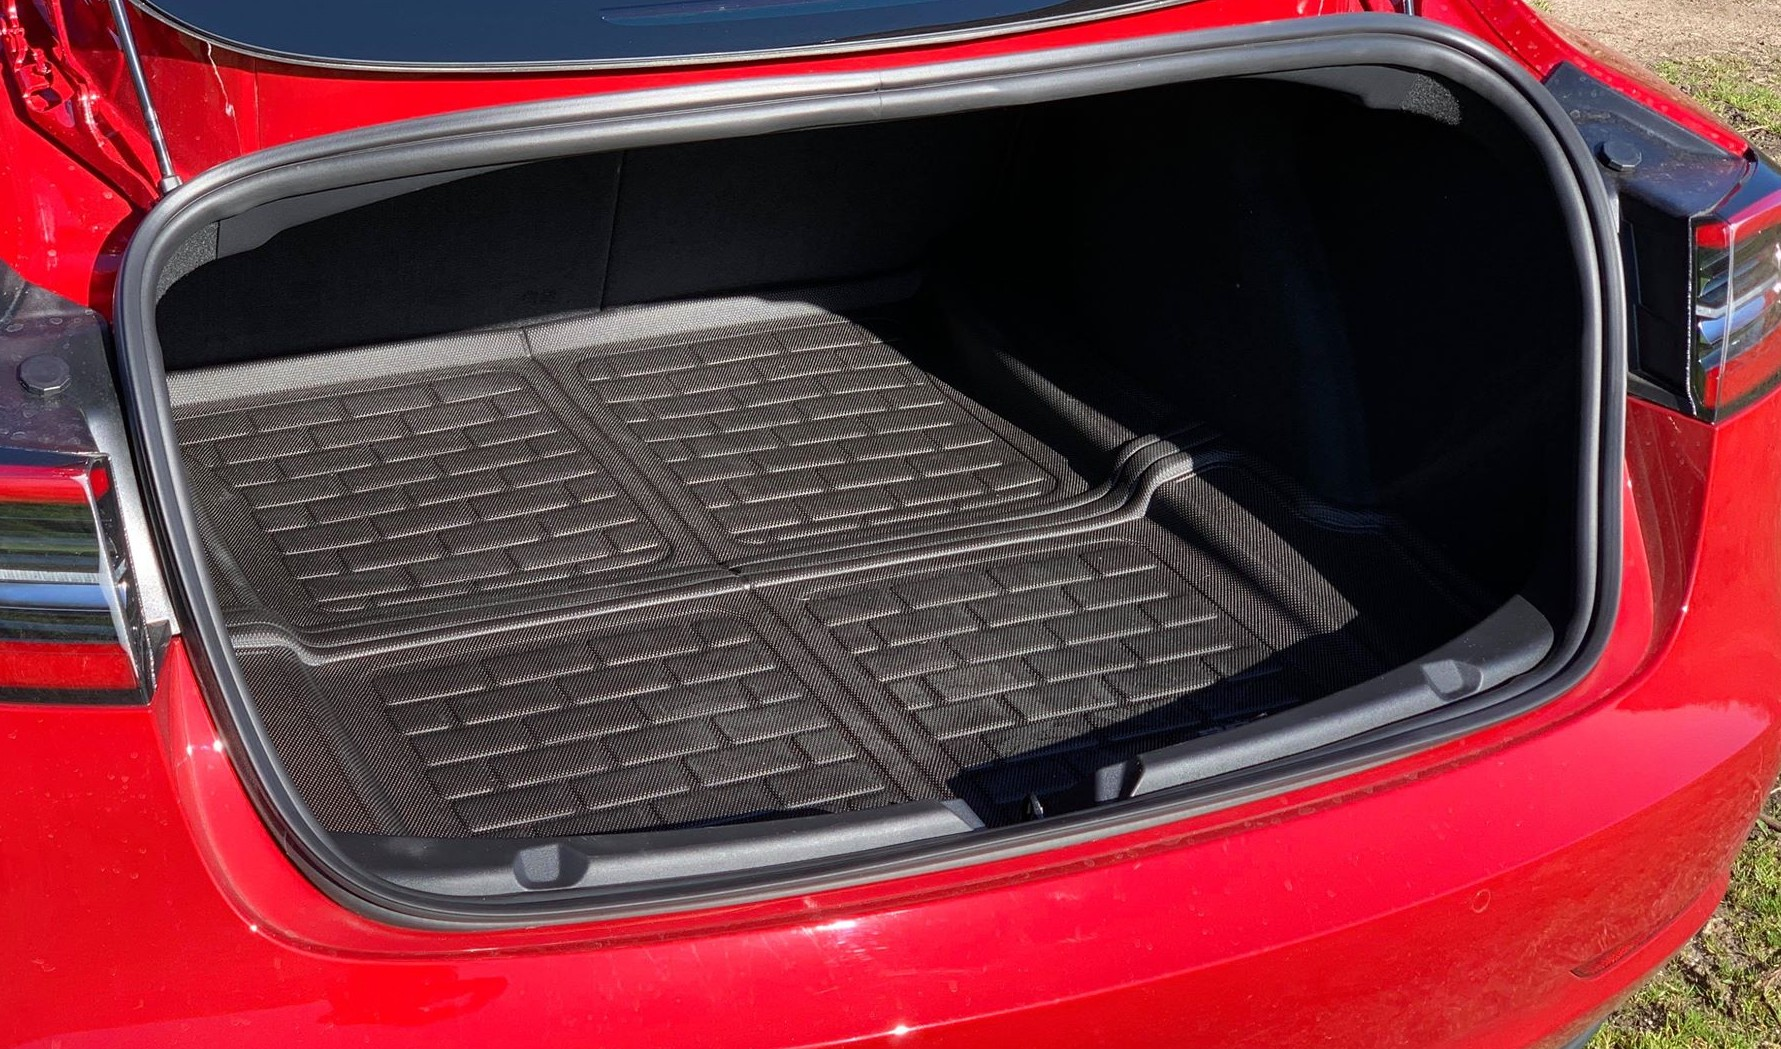 MAXpider All-Weather Frunk & Trunk Floor Liners for Model 3 REAR TRUNK  LINER IN STOCK, FRUNK LINERS ARE SOLD OUT TILL MID TO LATE JULY